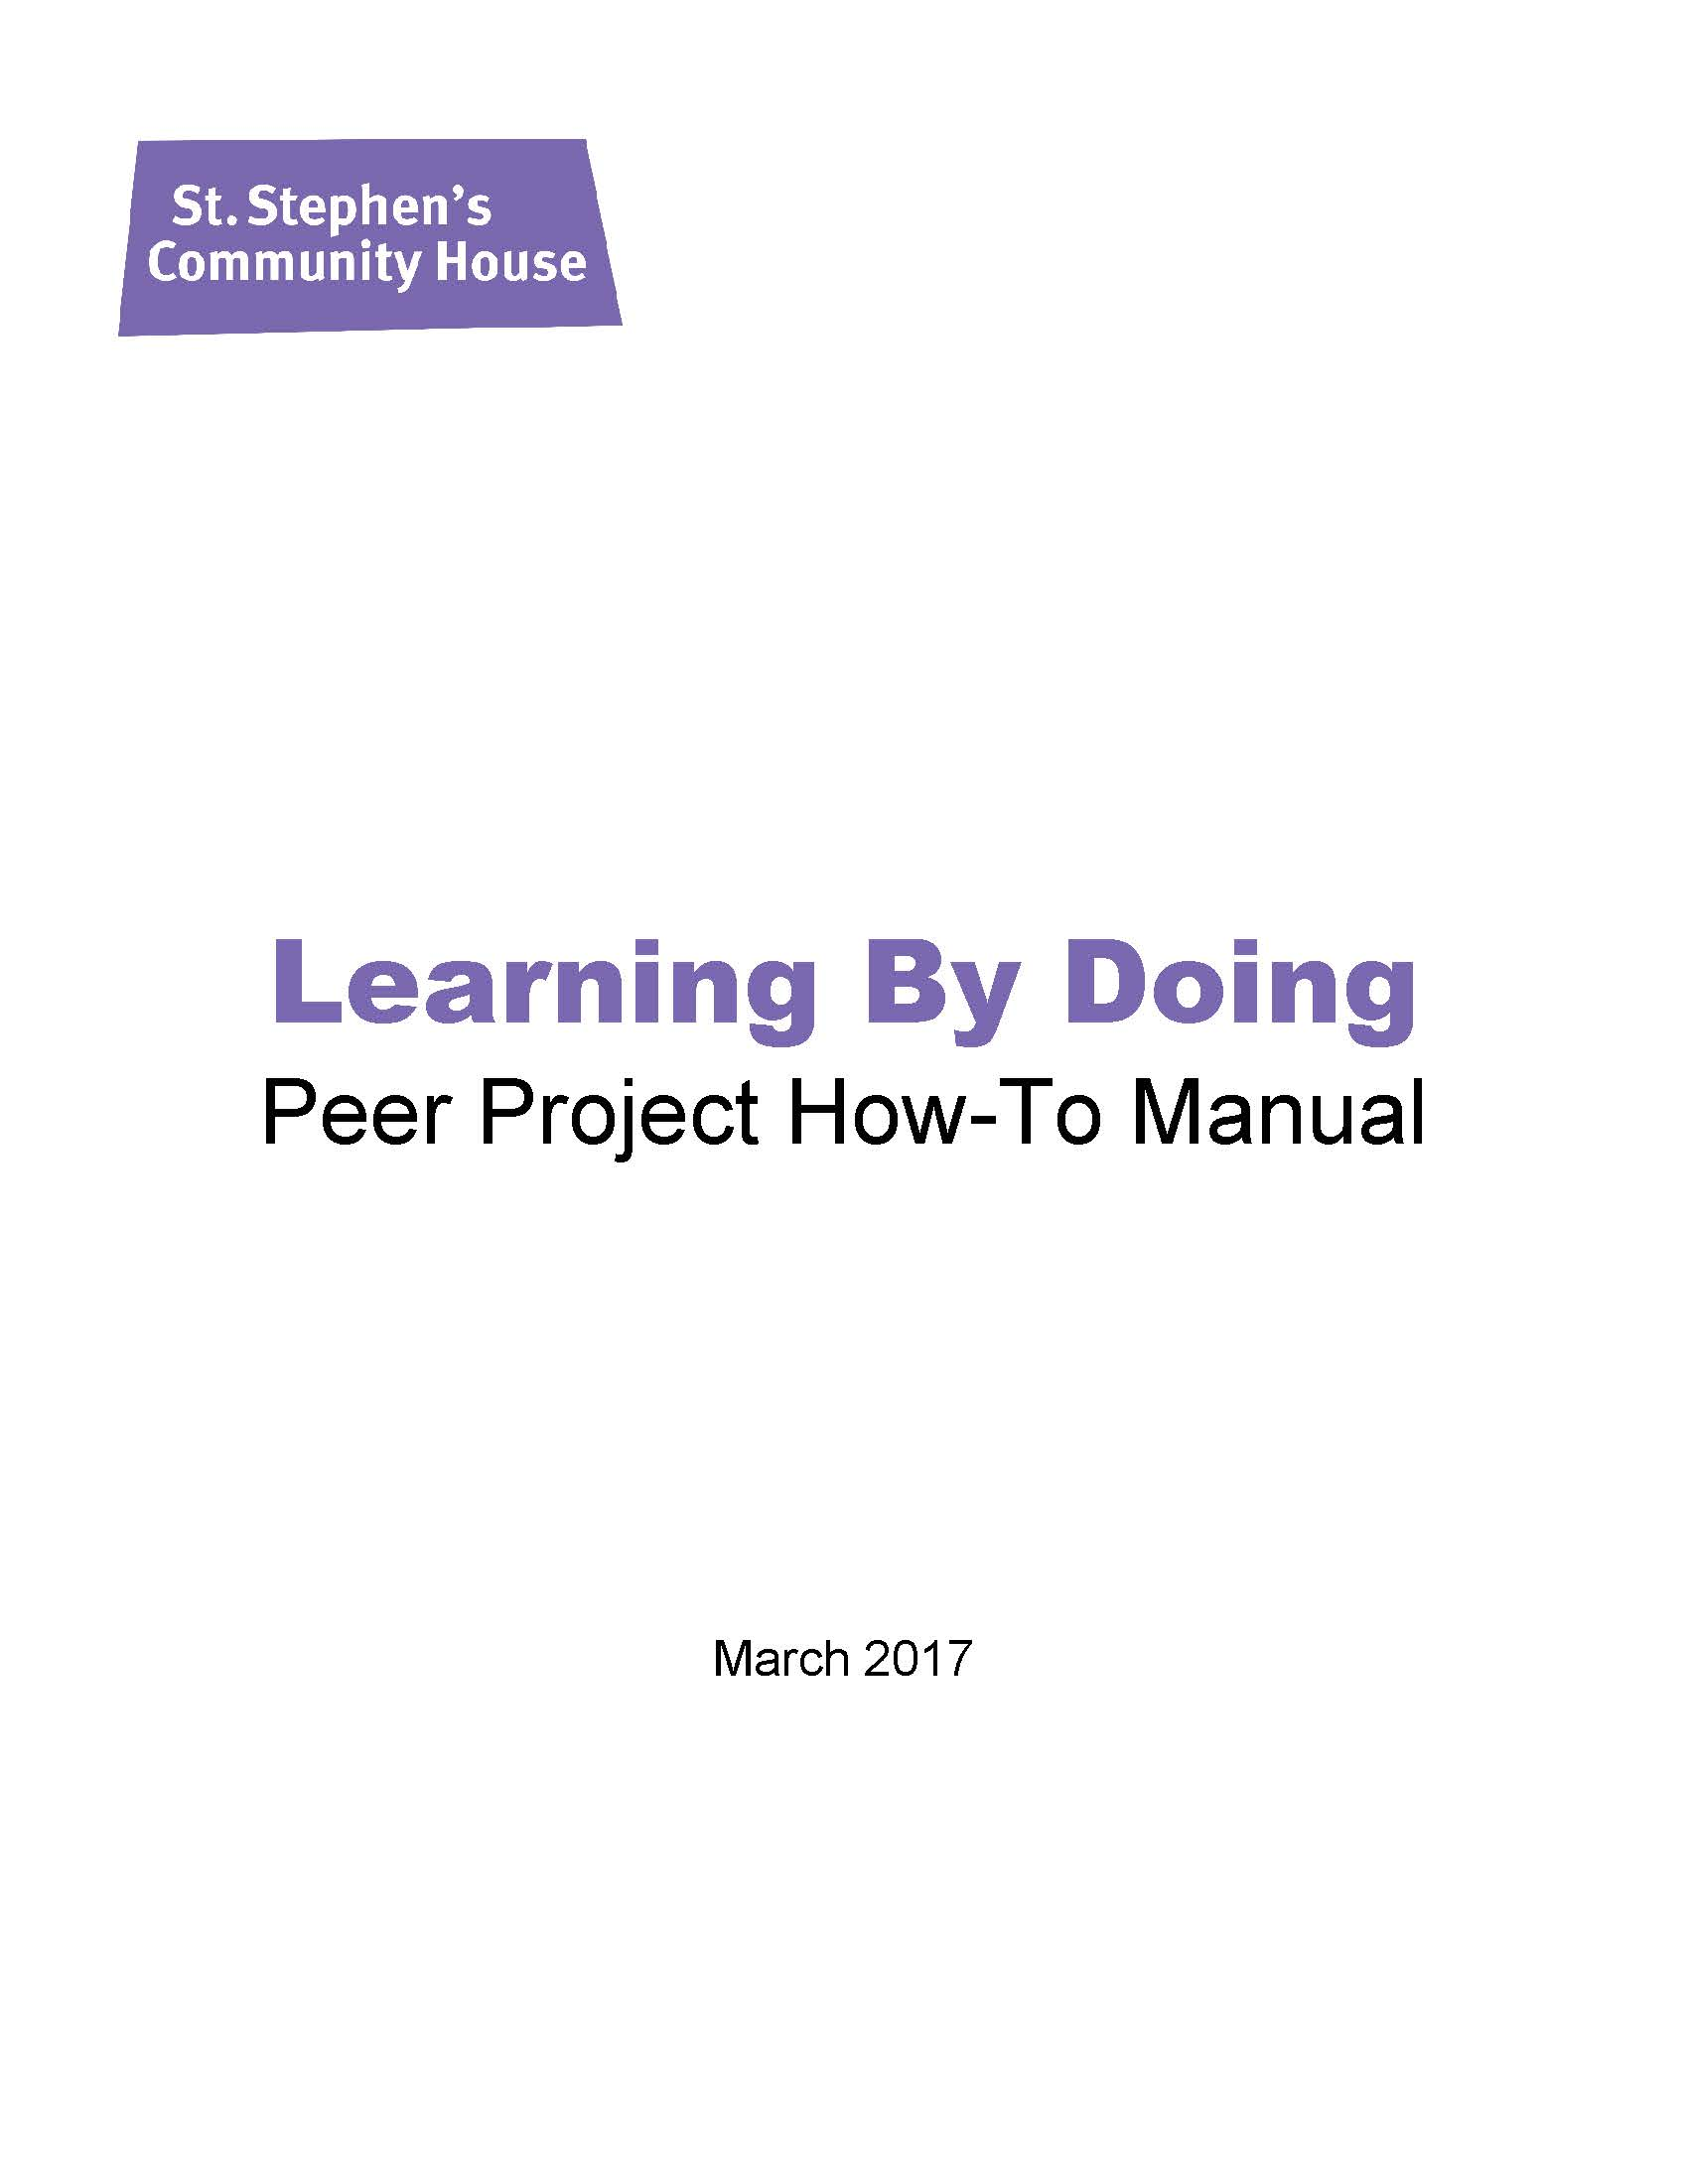 Learning By Doing - Peer Project How To Manual